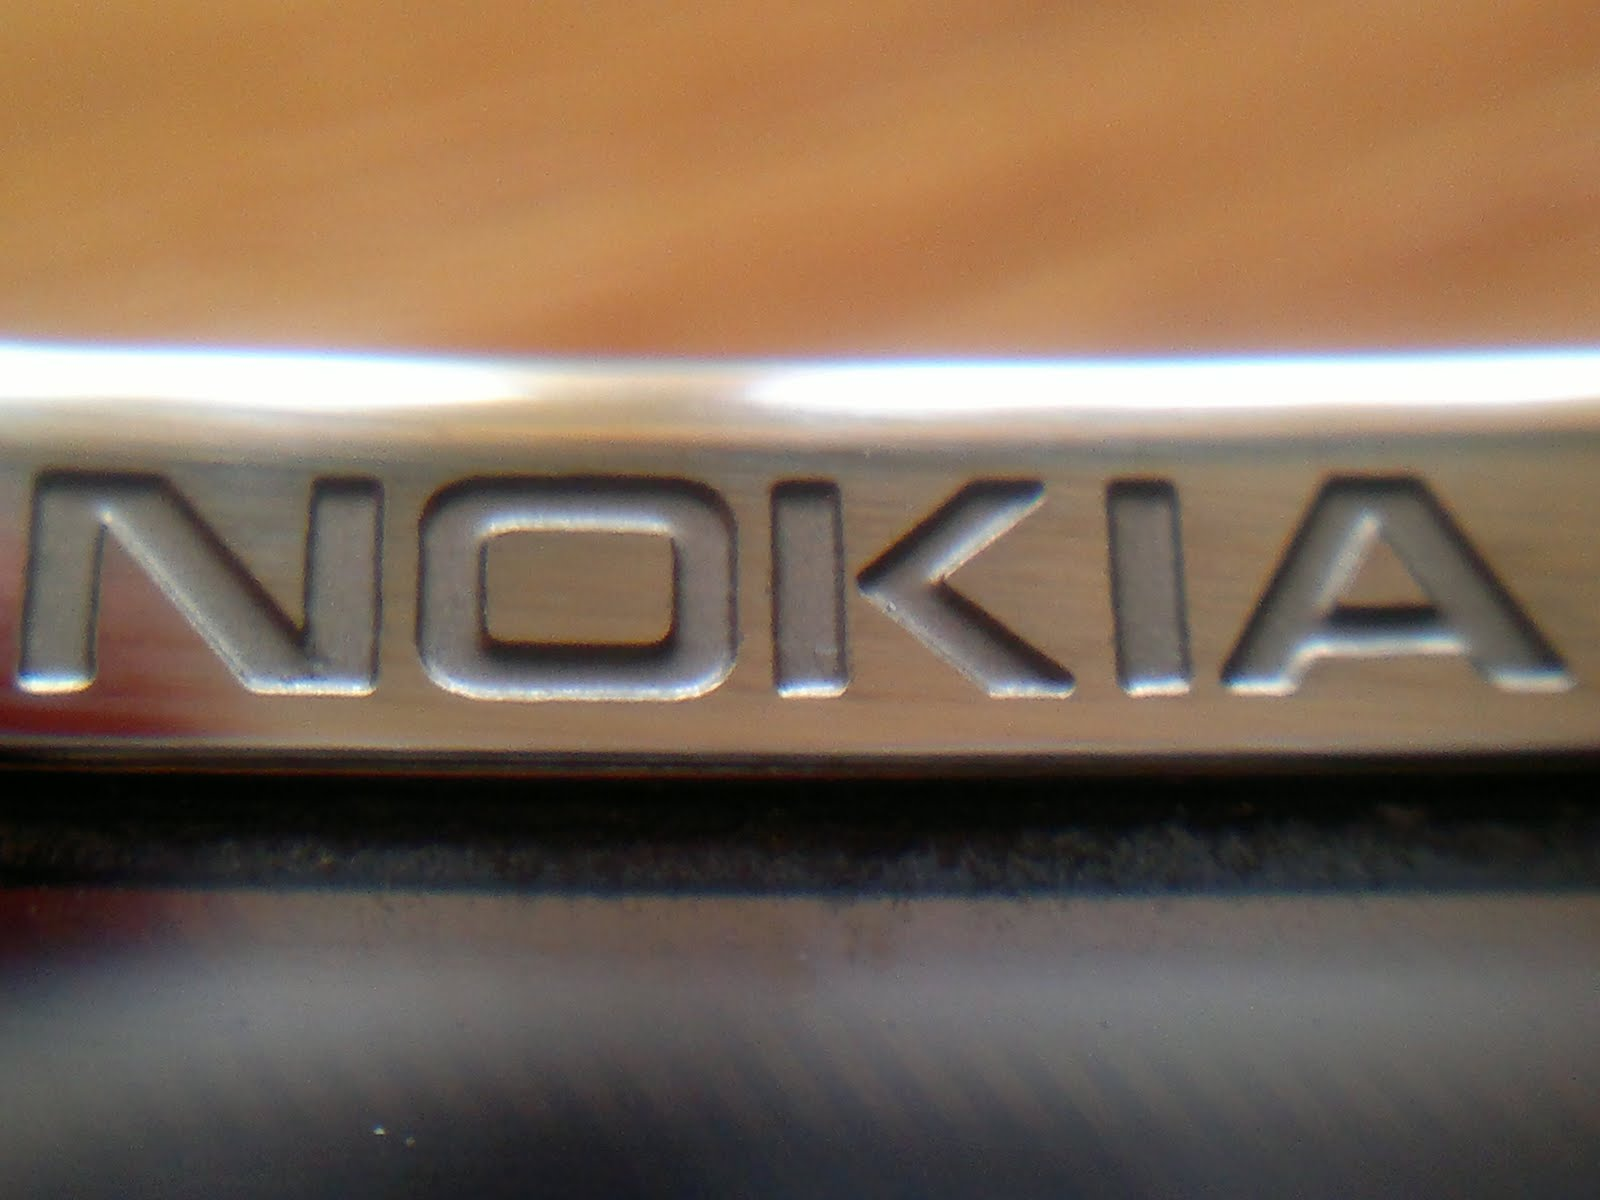 Where did that Nokia theme tune really come from?